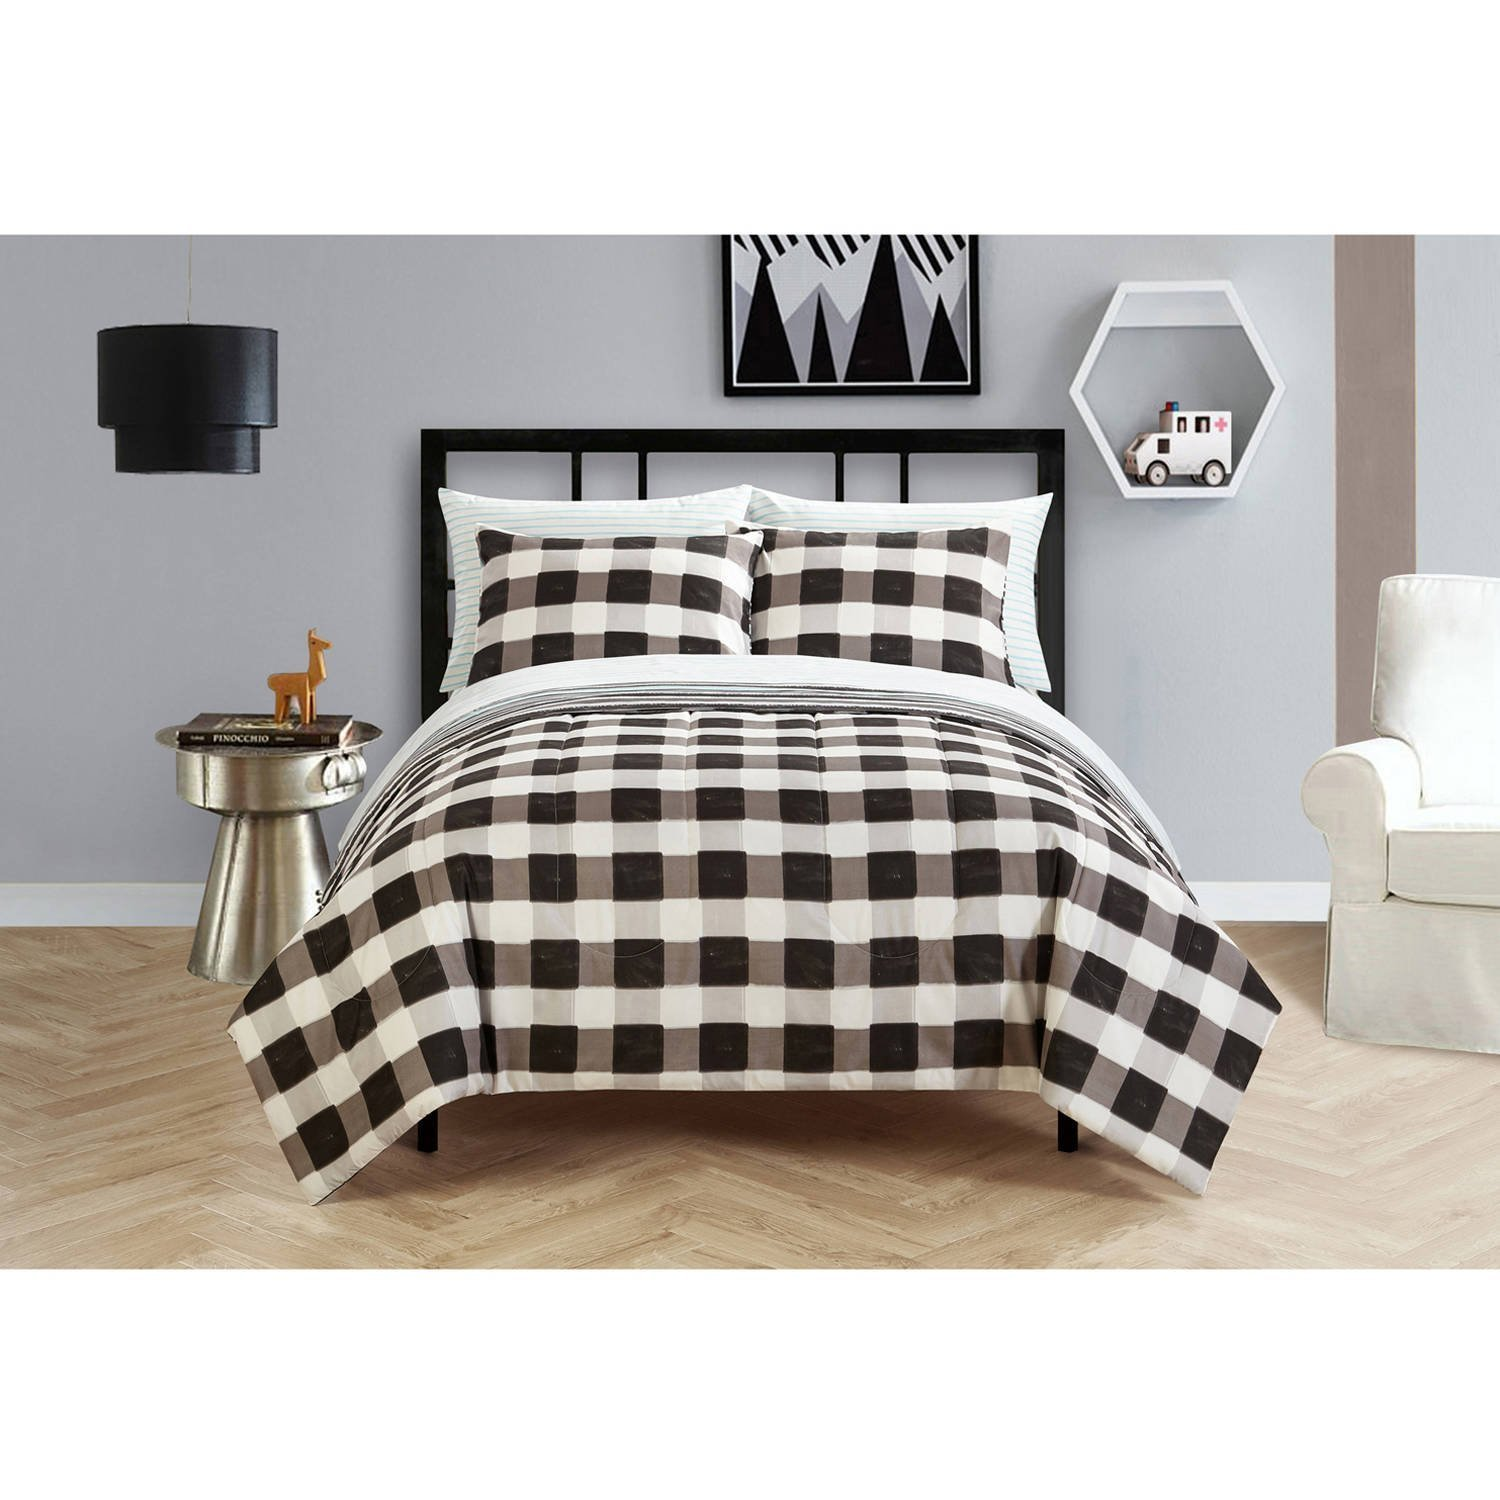 Your Zone Teen Plaid Classic Black and White Stripes Checkered Reversible Bedding Full Comforter for Boys (7 Piece in a Bag)